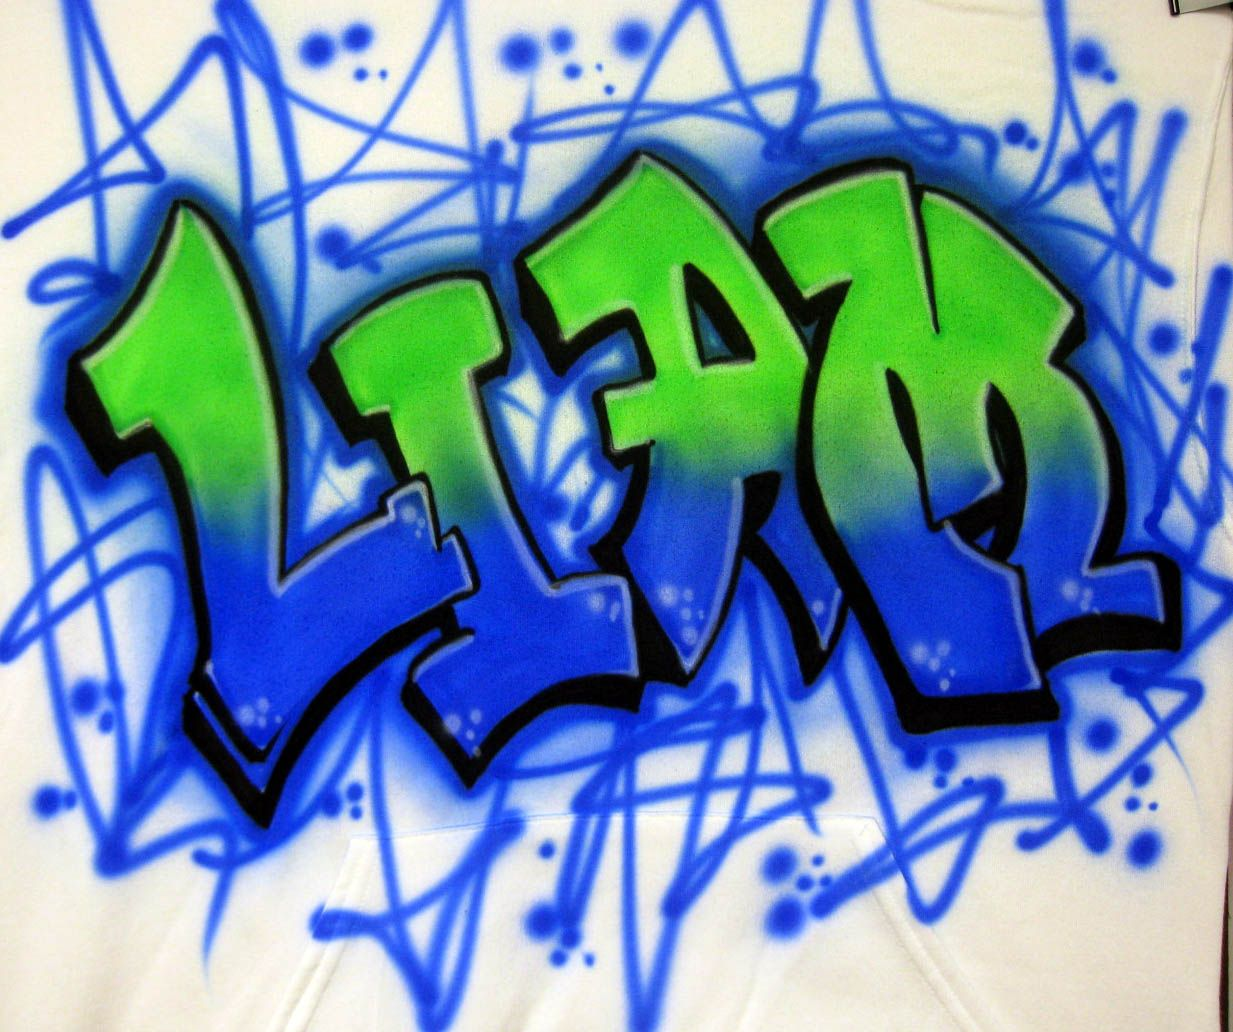 Airbrush Graffiti Name | Airbrush Designs | Pinterest ...